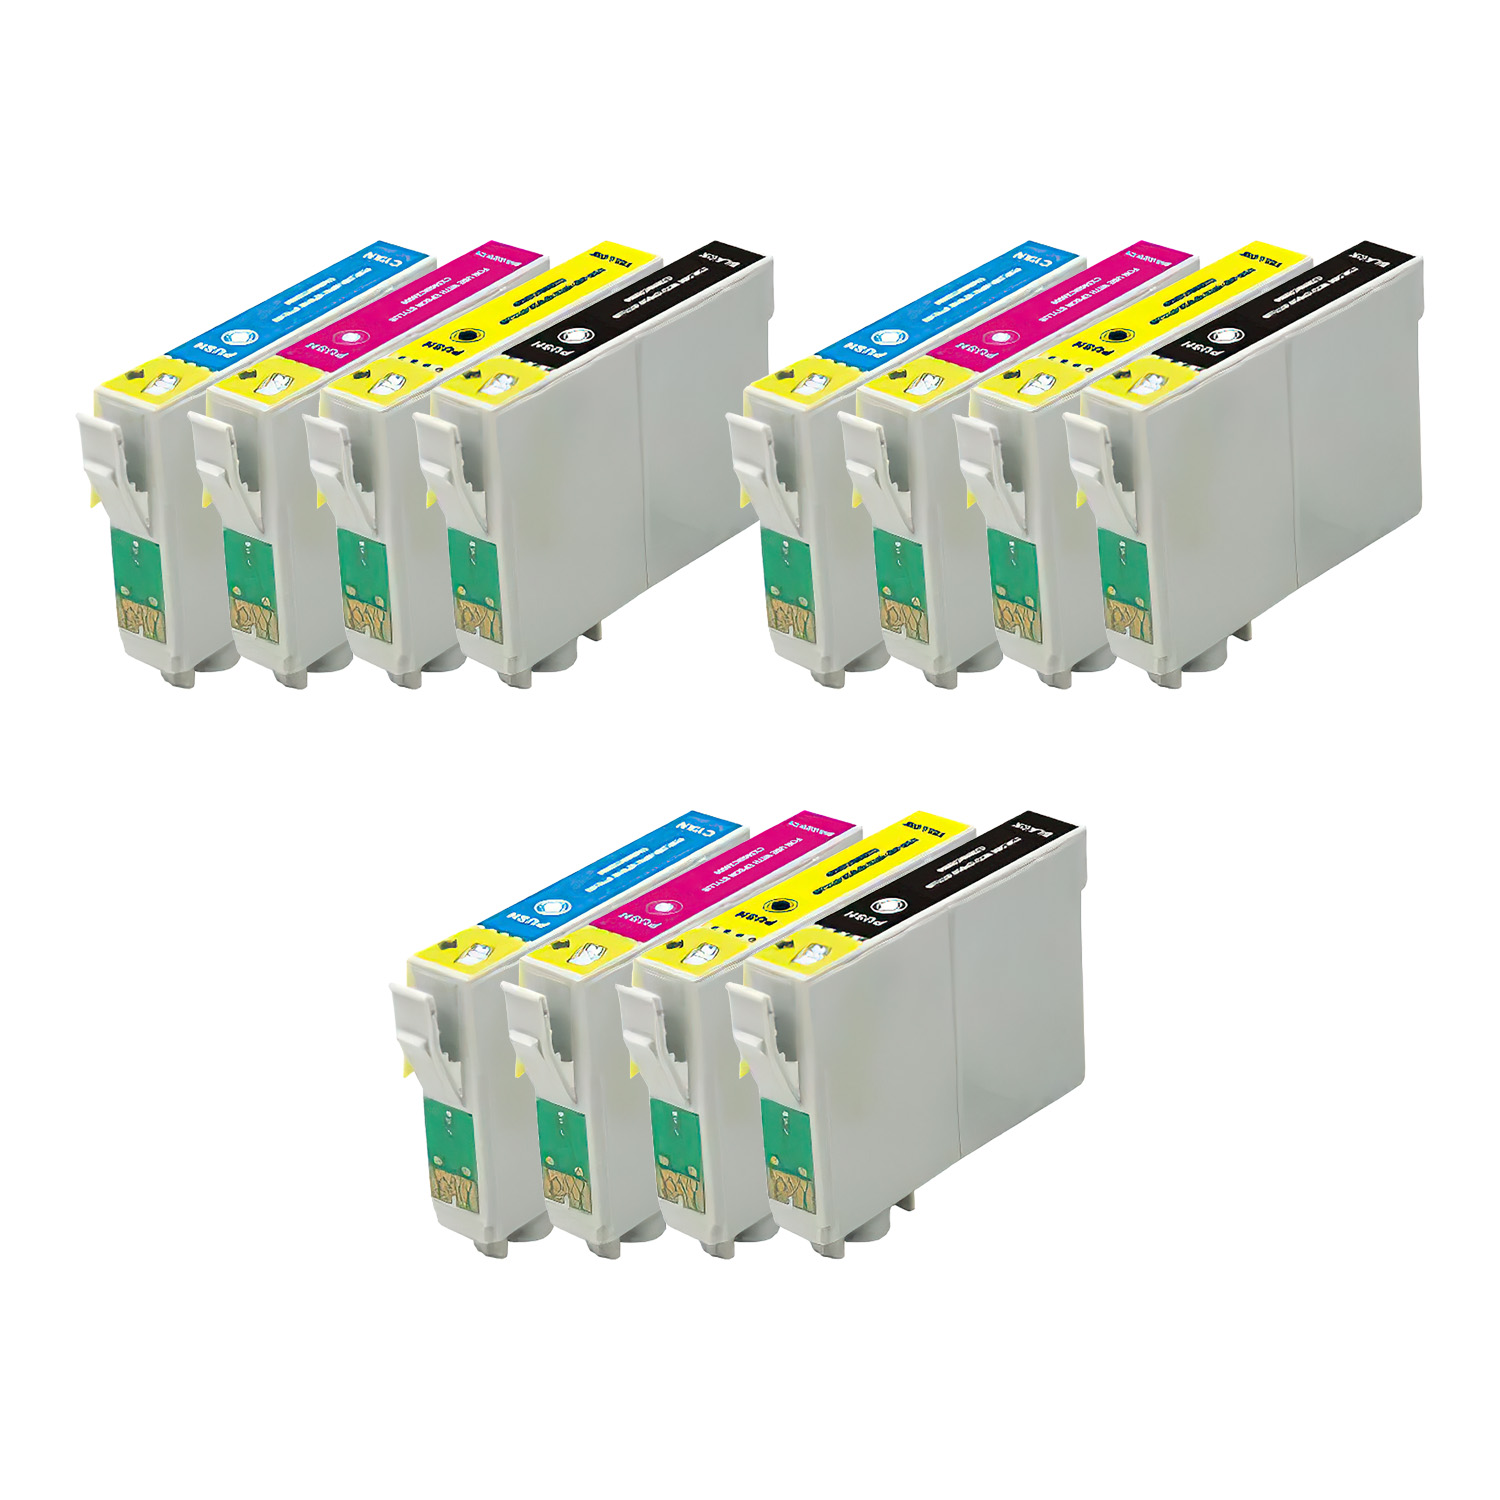 Remanufactured Epson 88 Inkjet Pack - 12 Cartridges